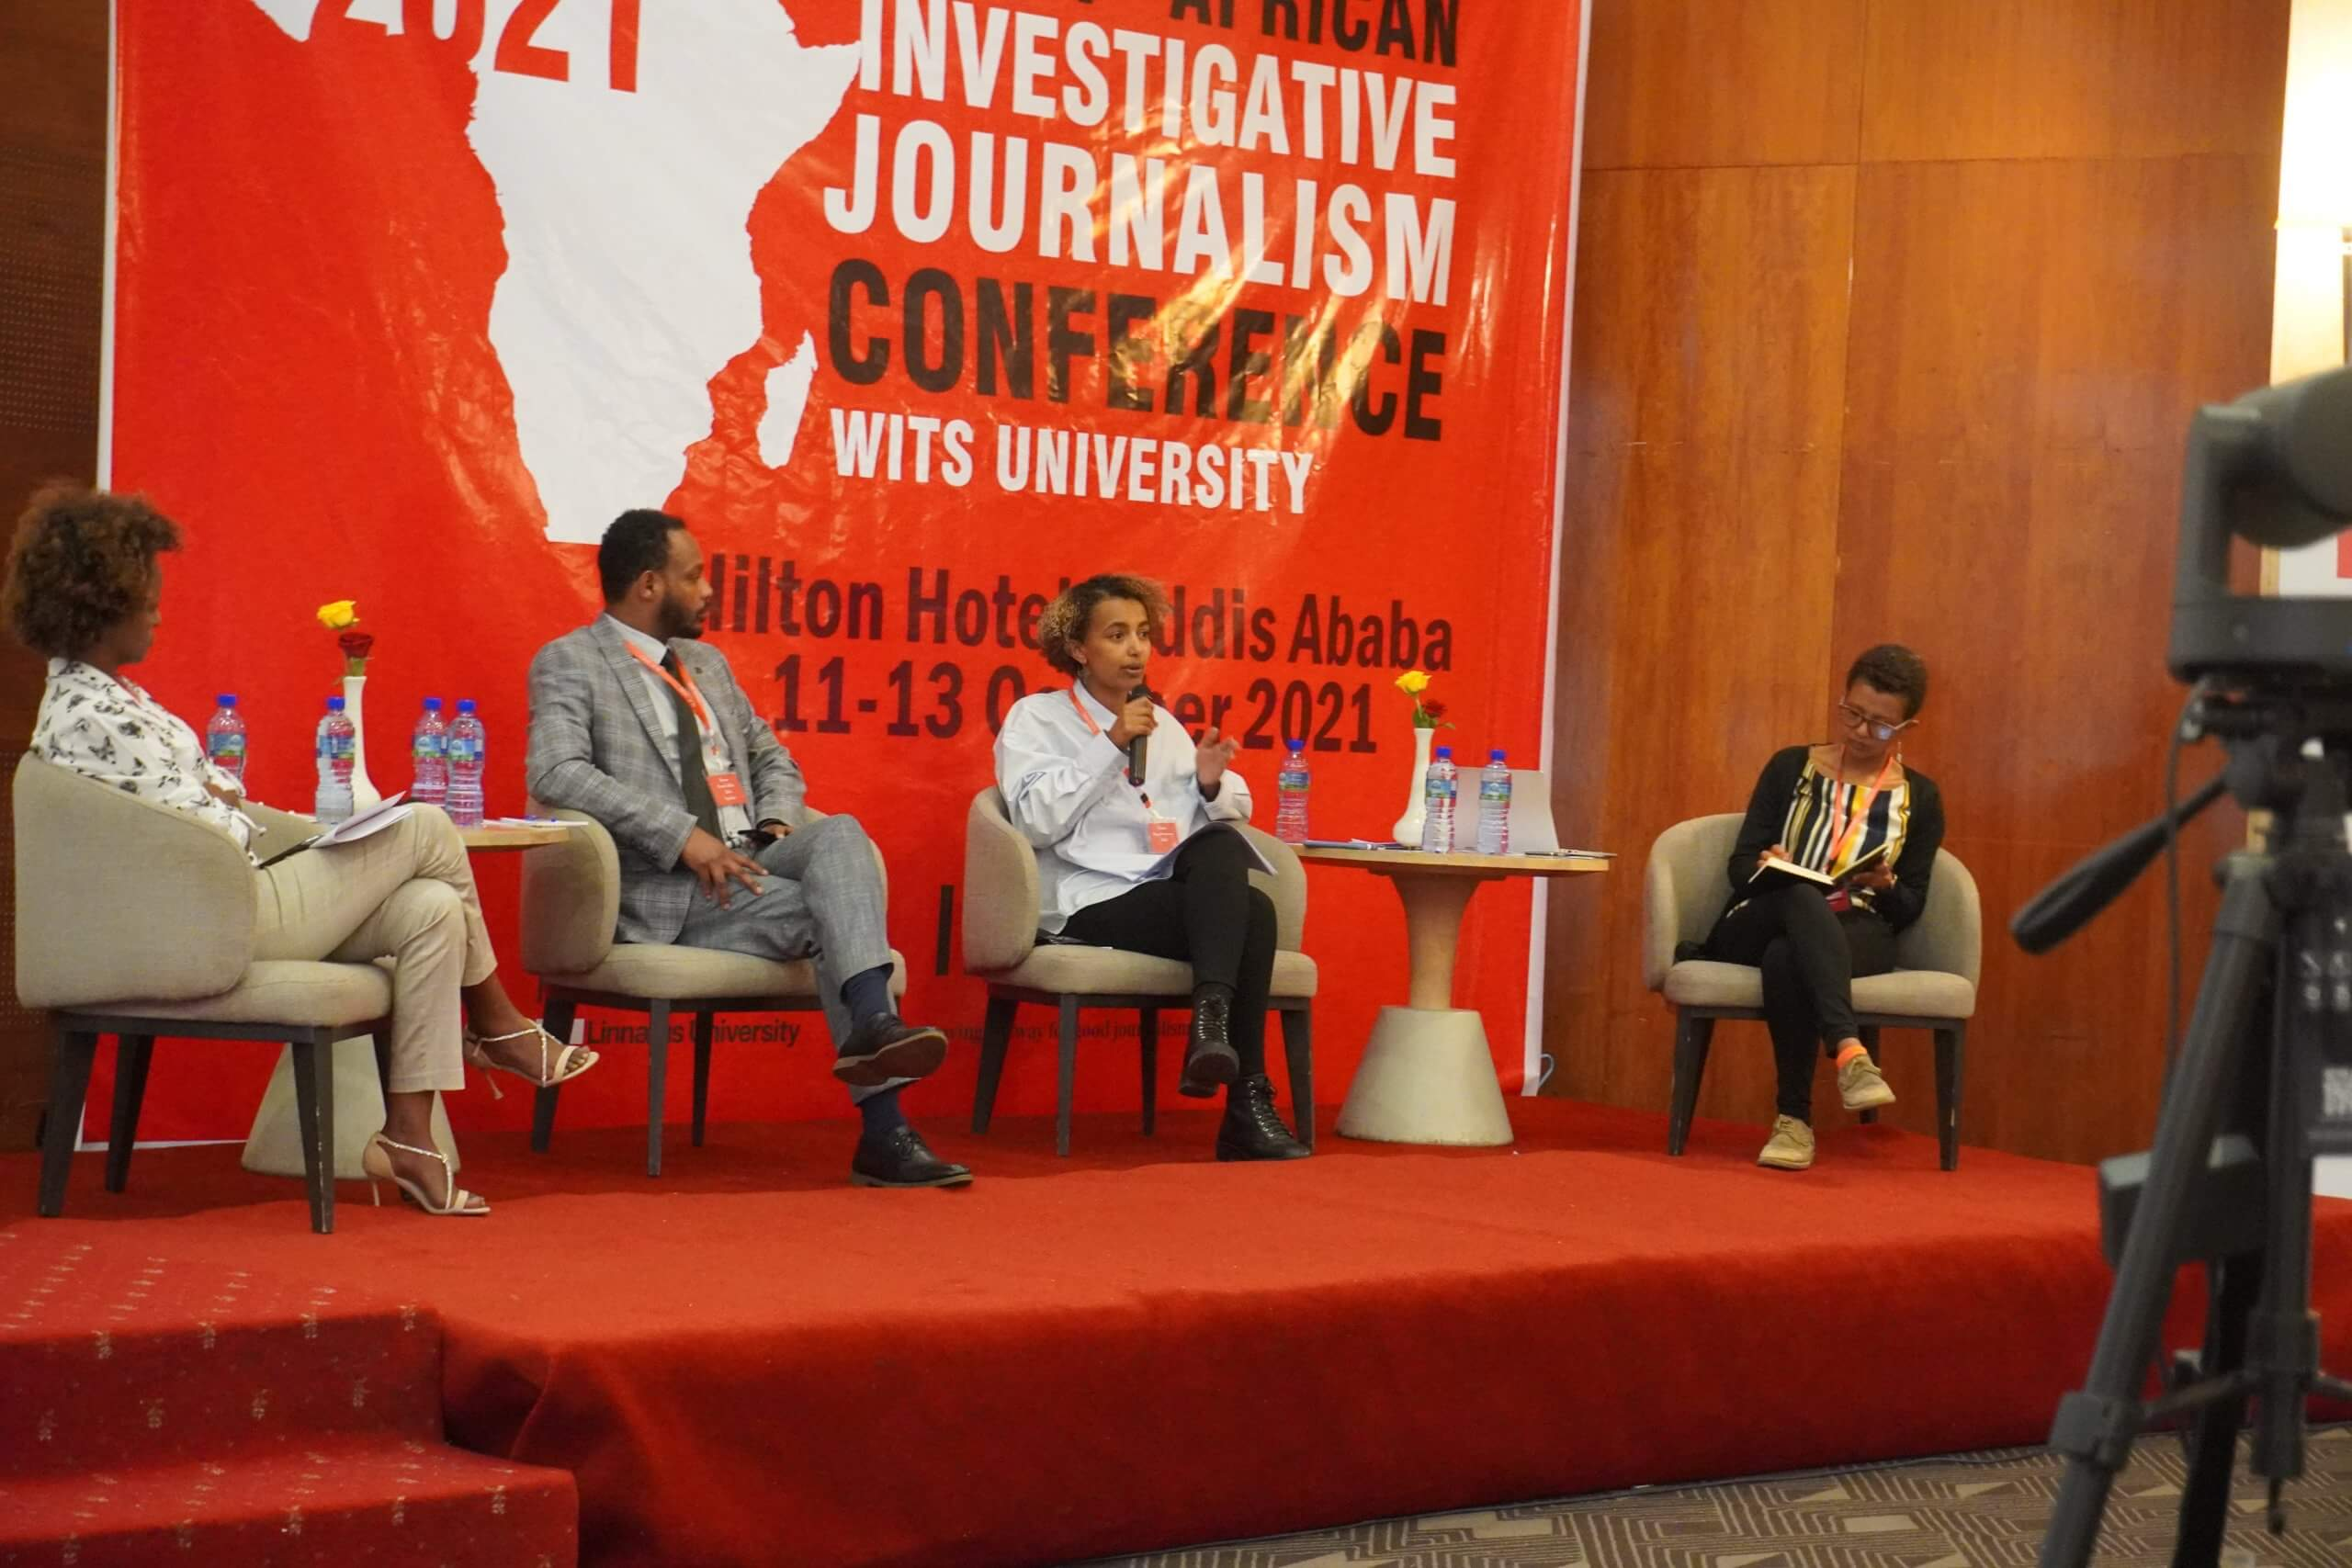 African biggest investigative journalism conference comes to Ethiopia for the first time